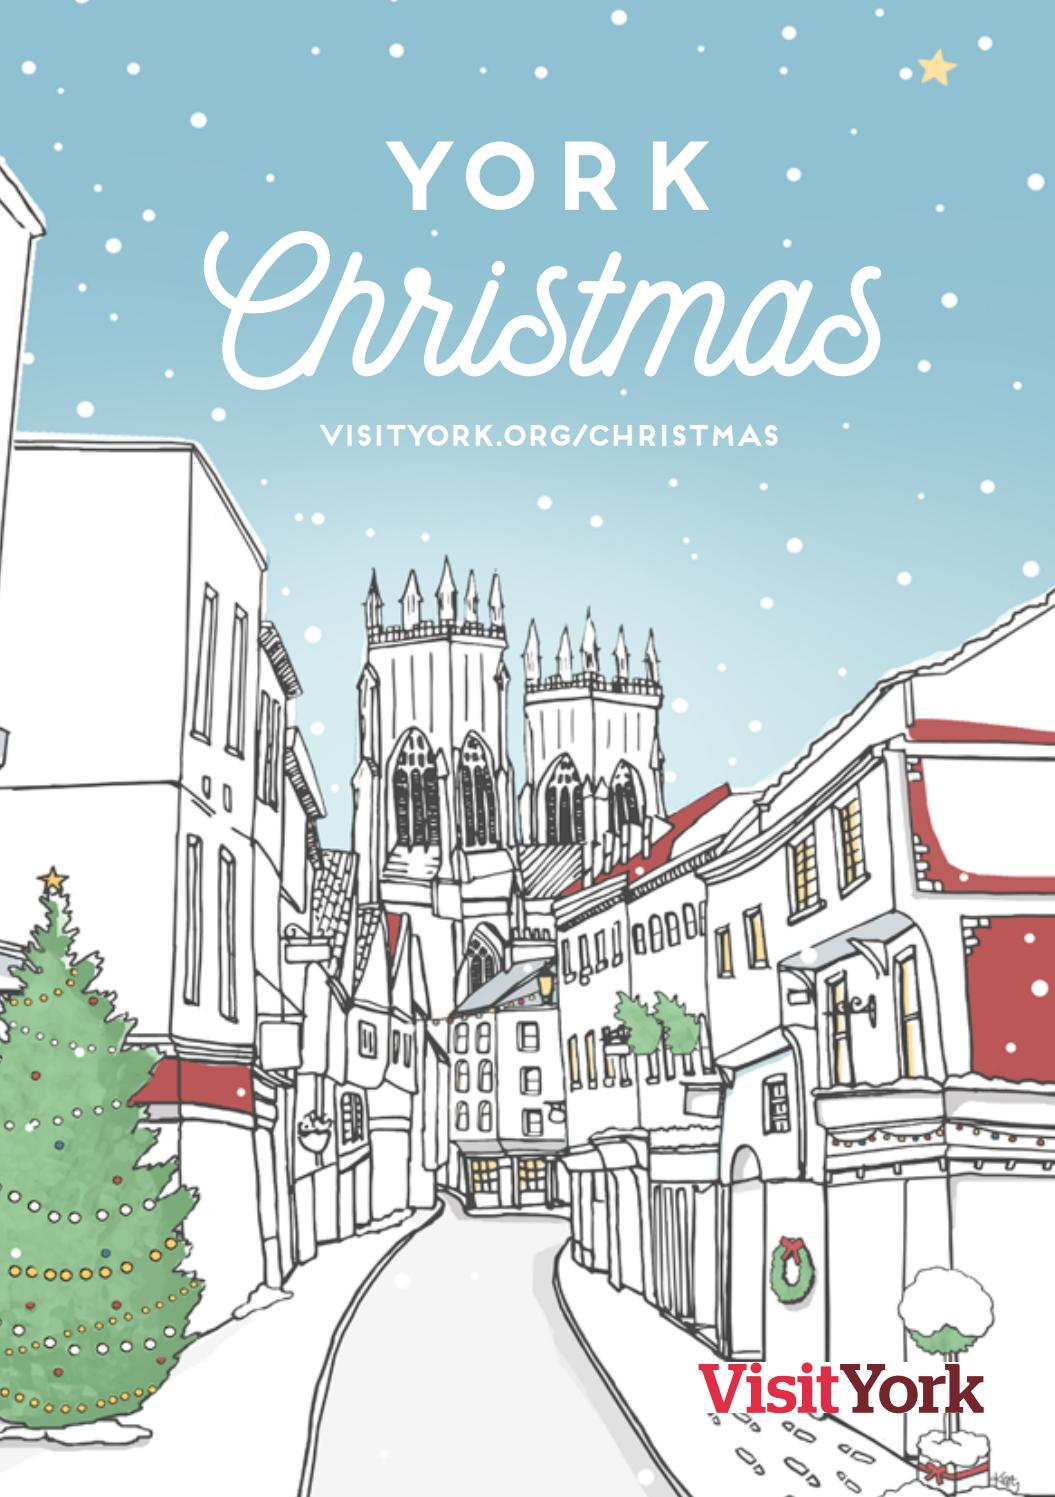 York Christmas Guide 2017 by Visit York - issuu